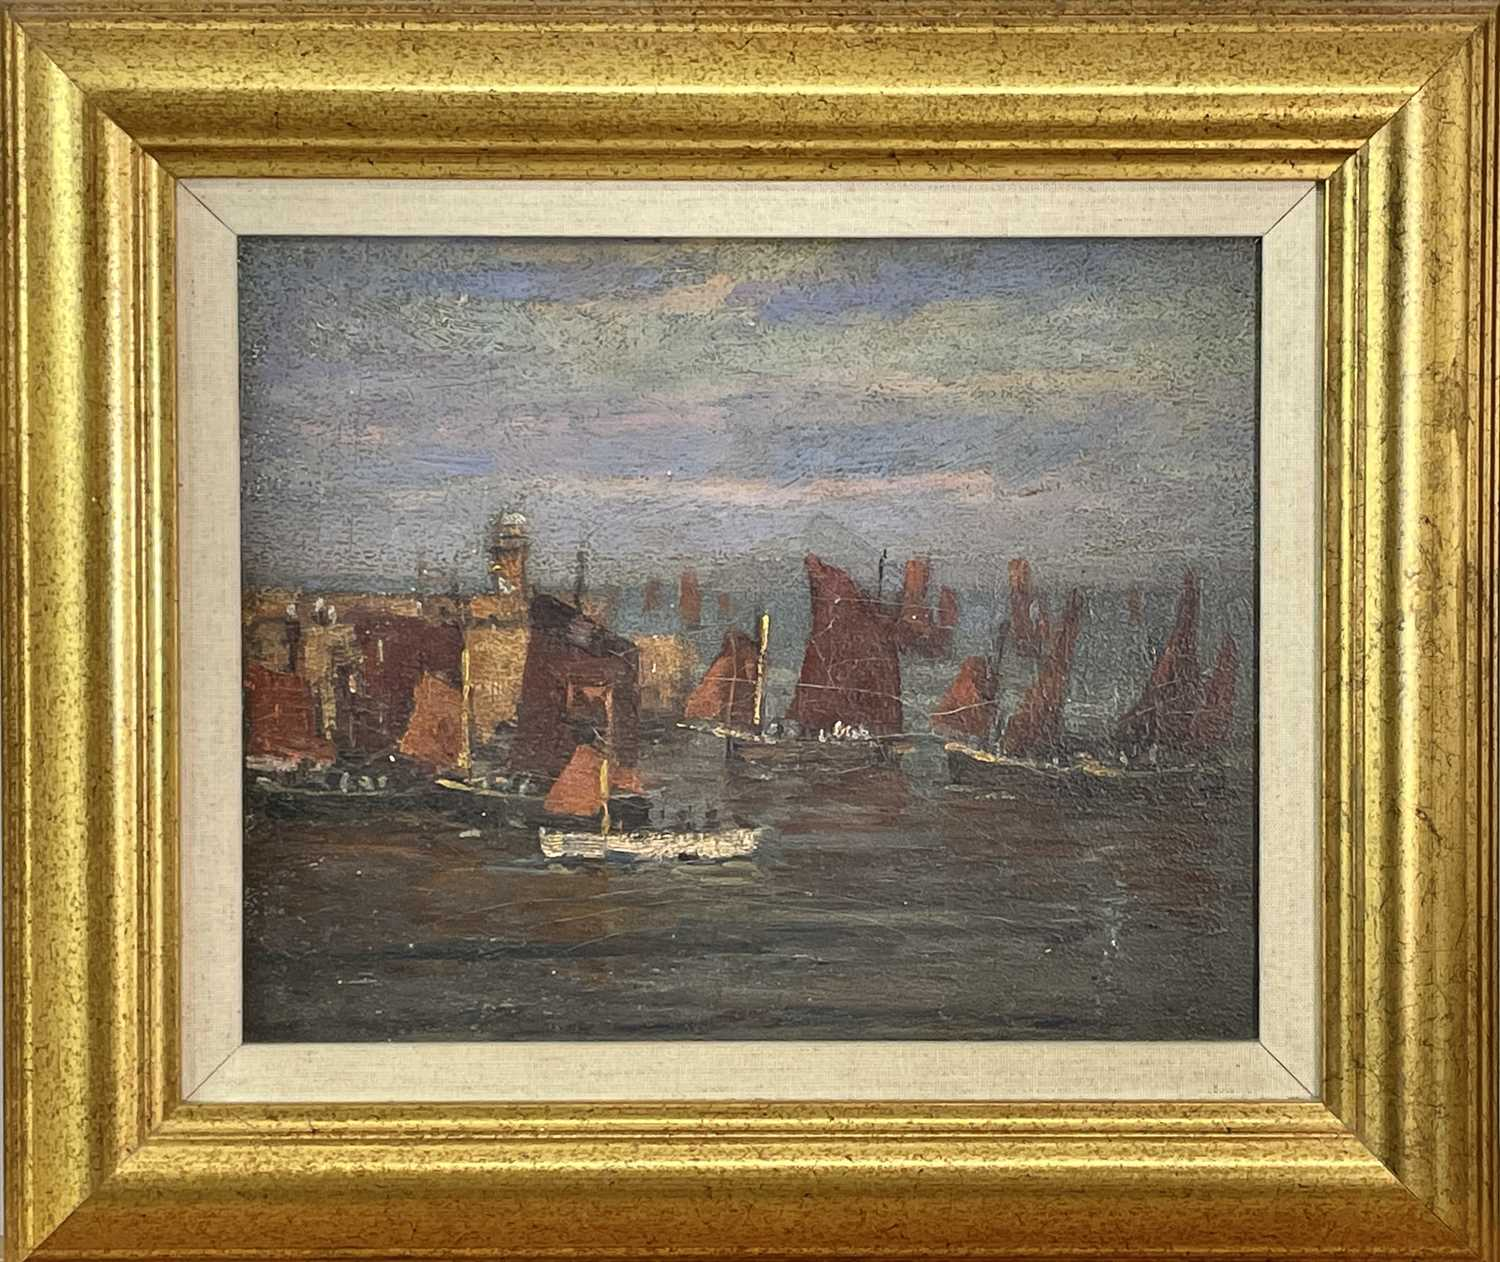 Circle of John Anthony PARK (1880-1962)Luggers in St Ives Harbour Oil on board 22 x 27cm - Image 2 of 3